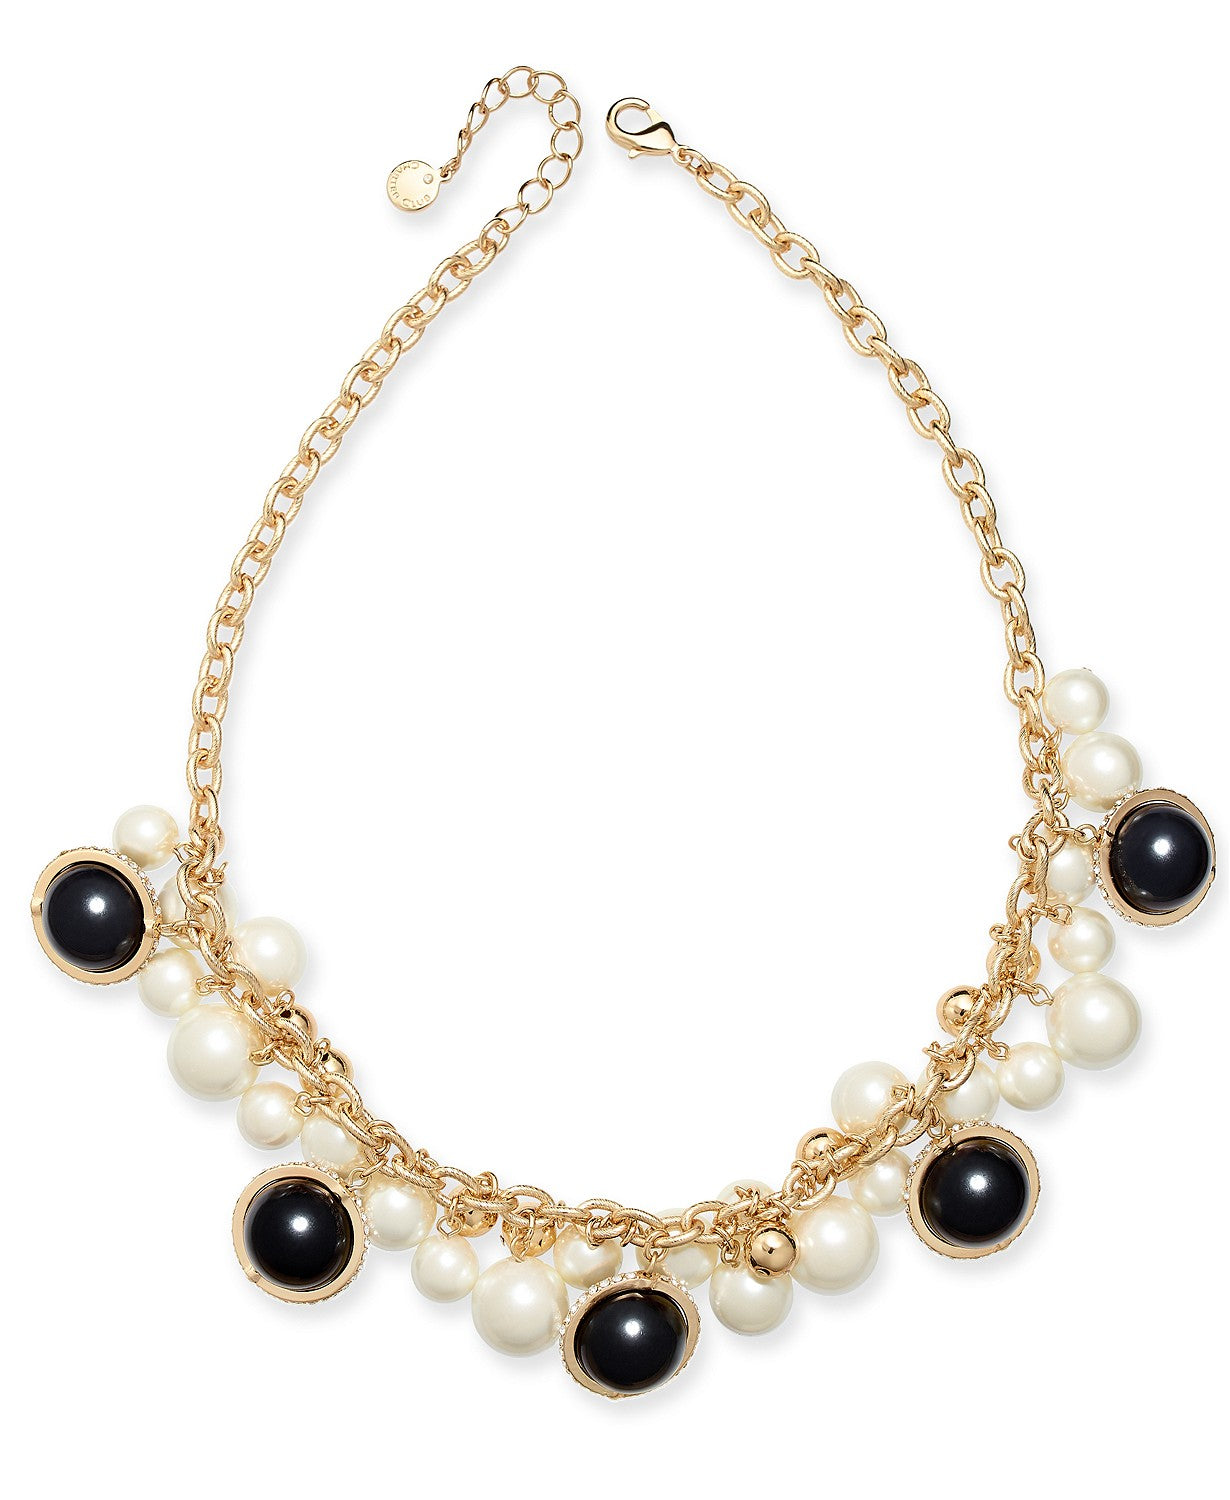 "Charter Club Gold-Tone Pavé, Imitation Pearl & Bead Shaky Collar Necklace, 17"" + 2"" extender"